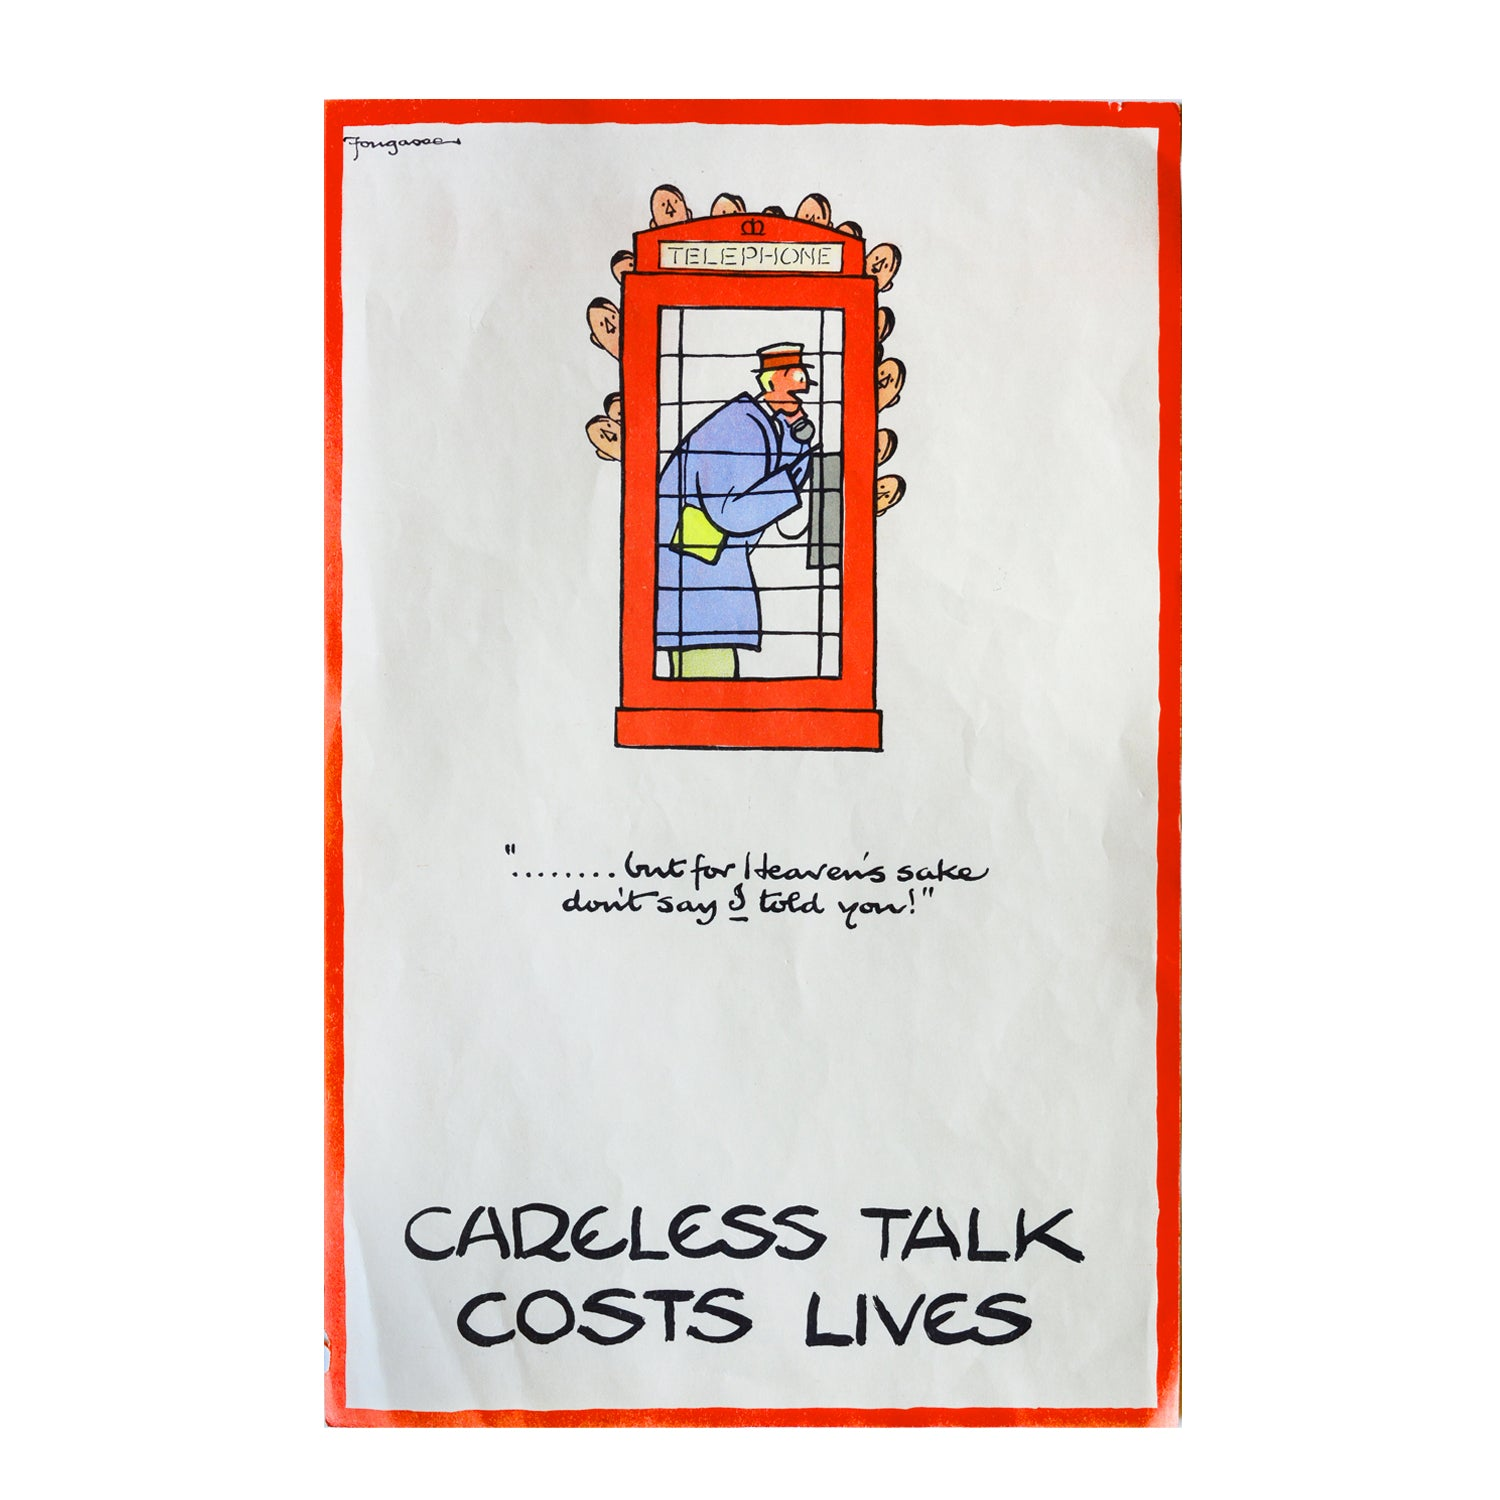 Original Fougasse Careless Talk Costs Lives poster 1940